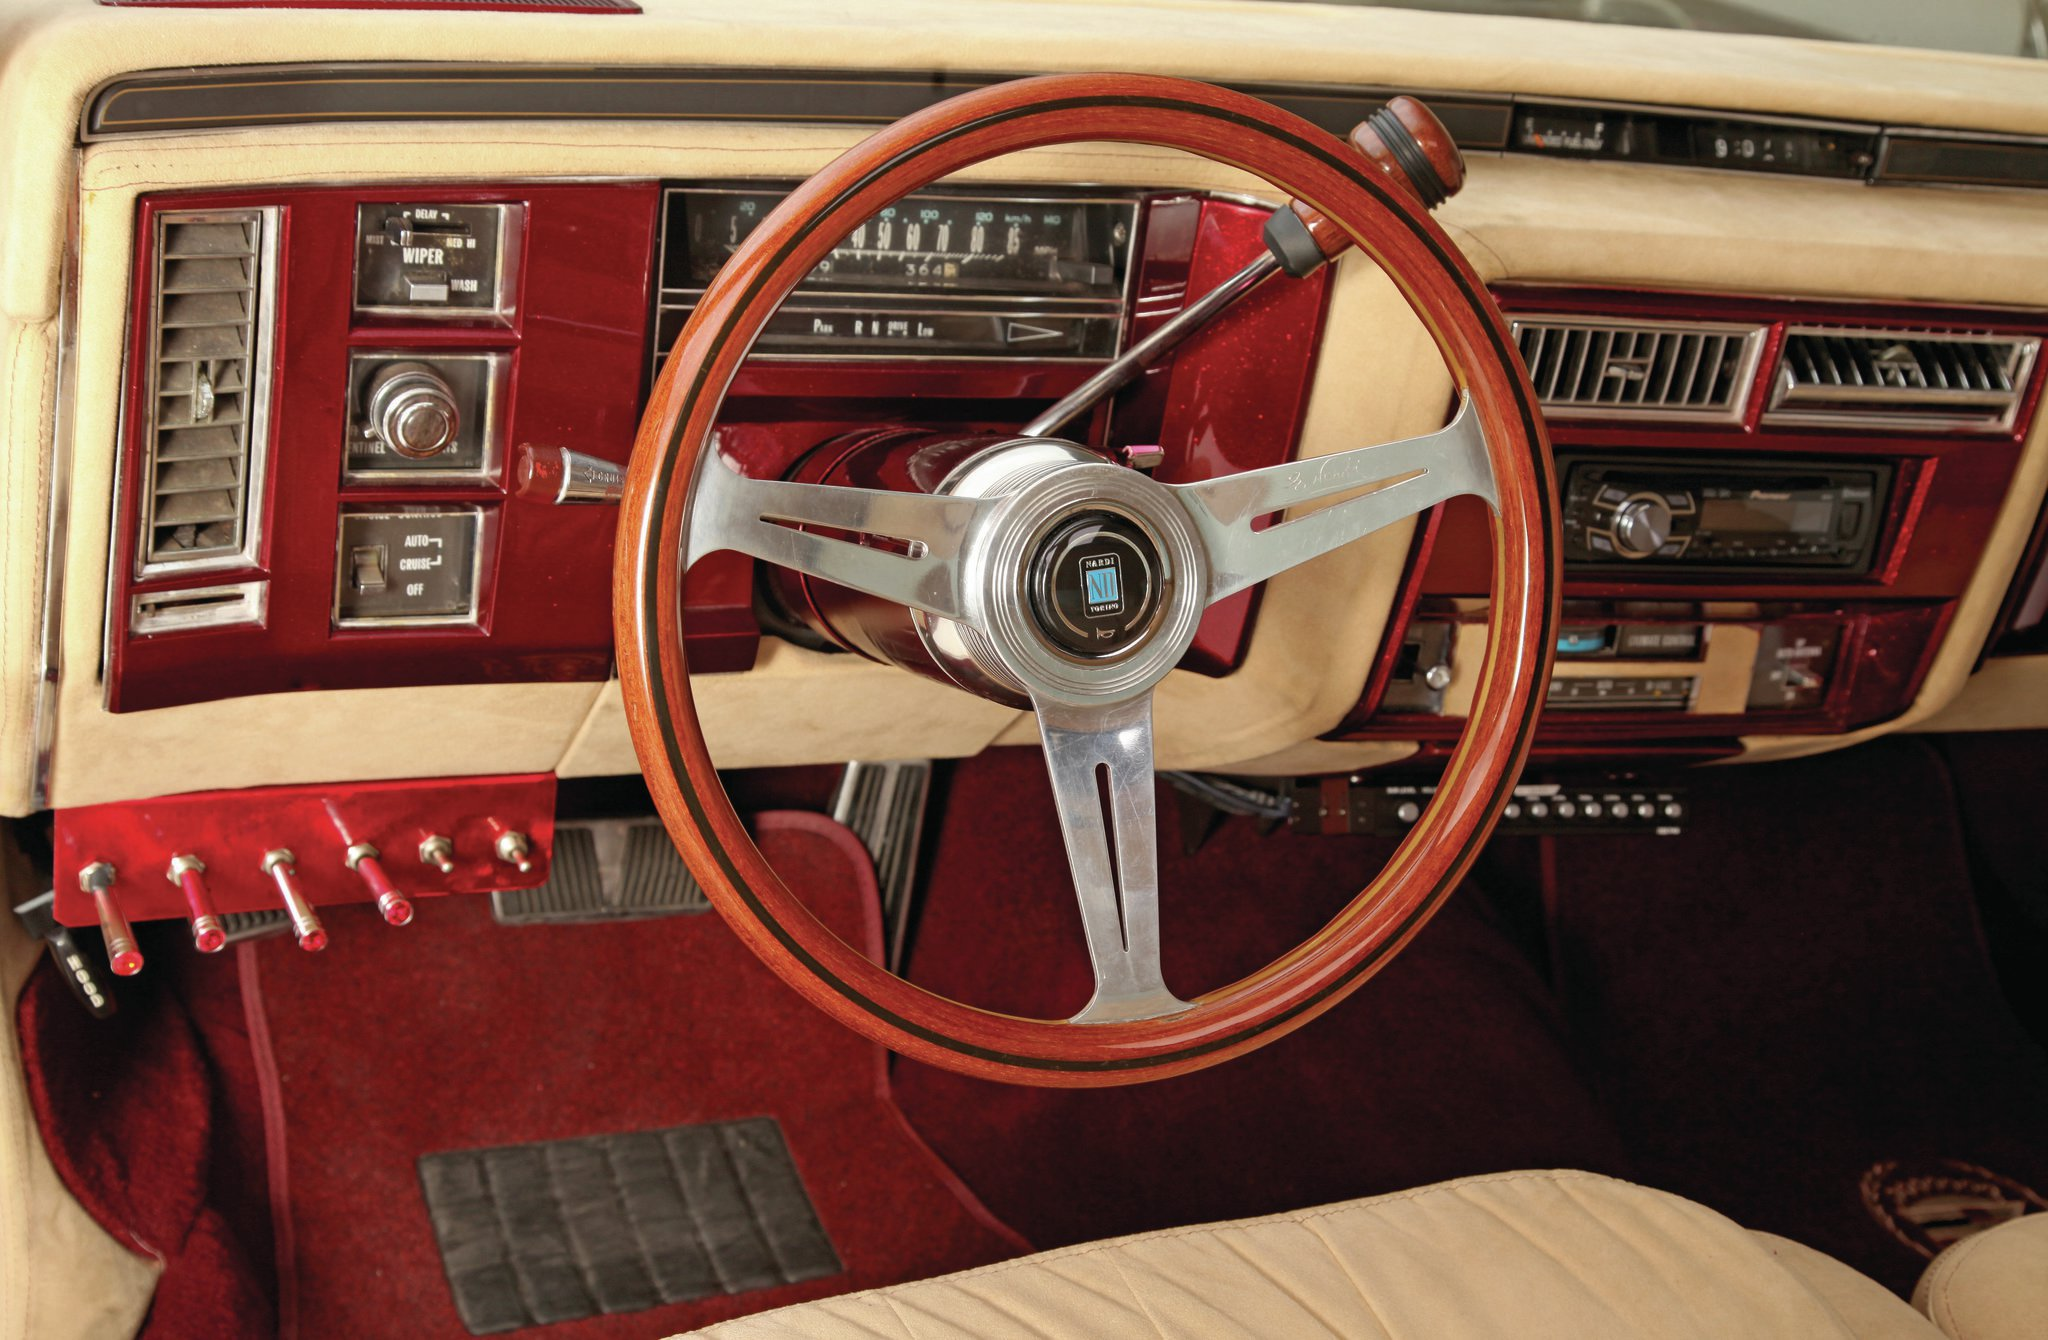 1977 Cadillac Coupe DeVille - Brandy And Seven